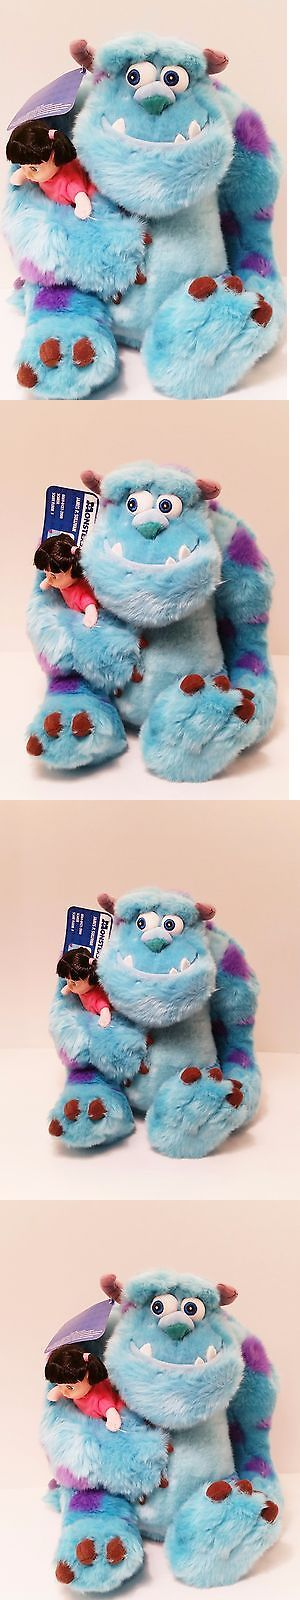 Monsters Inc 44038: James P. Sullivan With Boo Doll, 2001 Monsters Inc. Plush Mint Condition! -> BUY IT NOW ONLY: $69.99 on eBay!